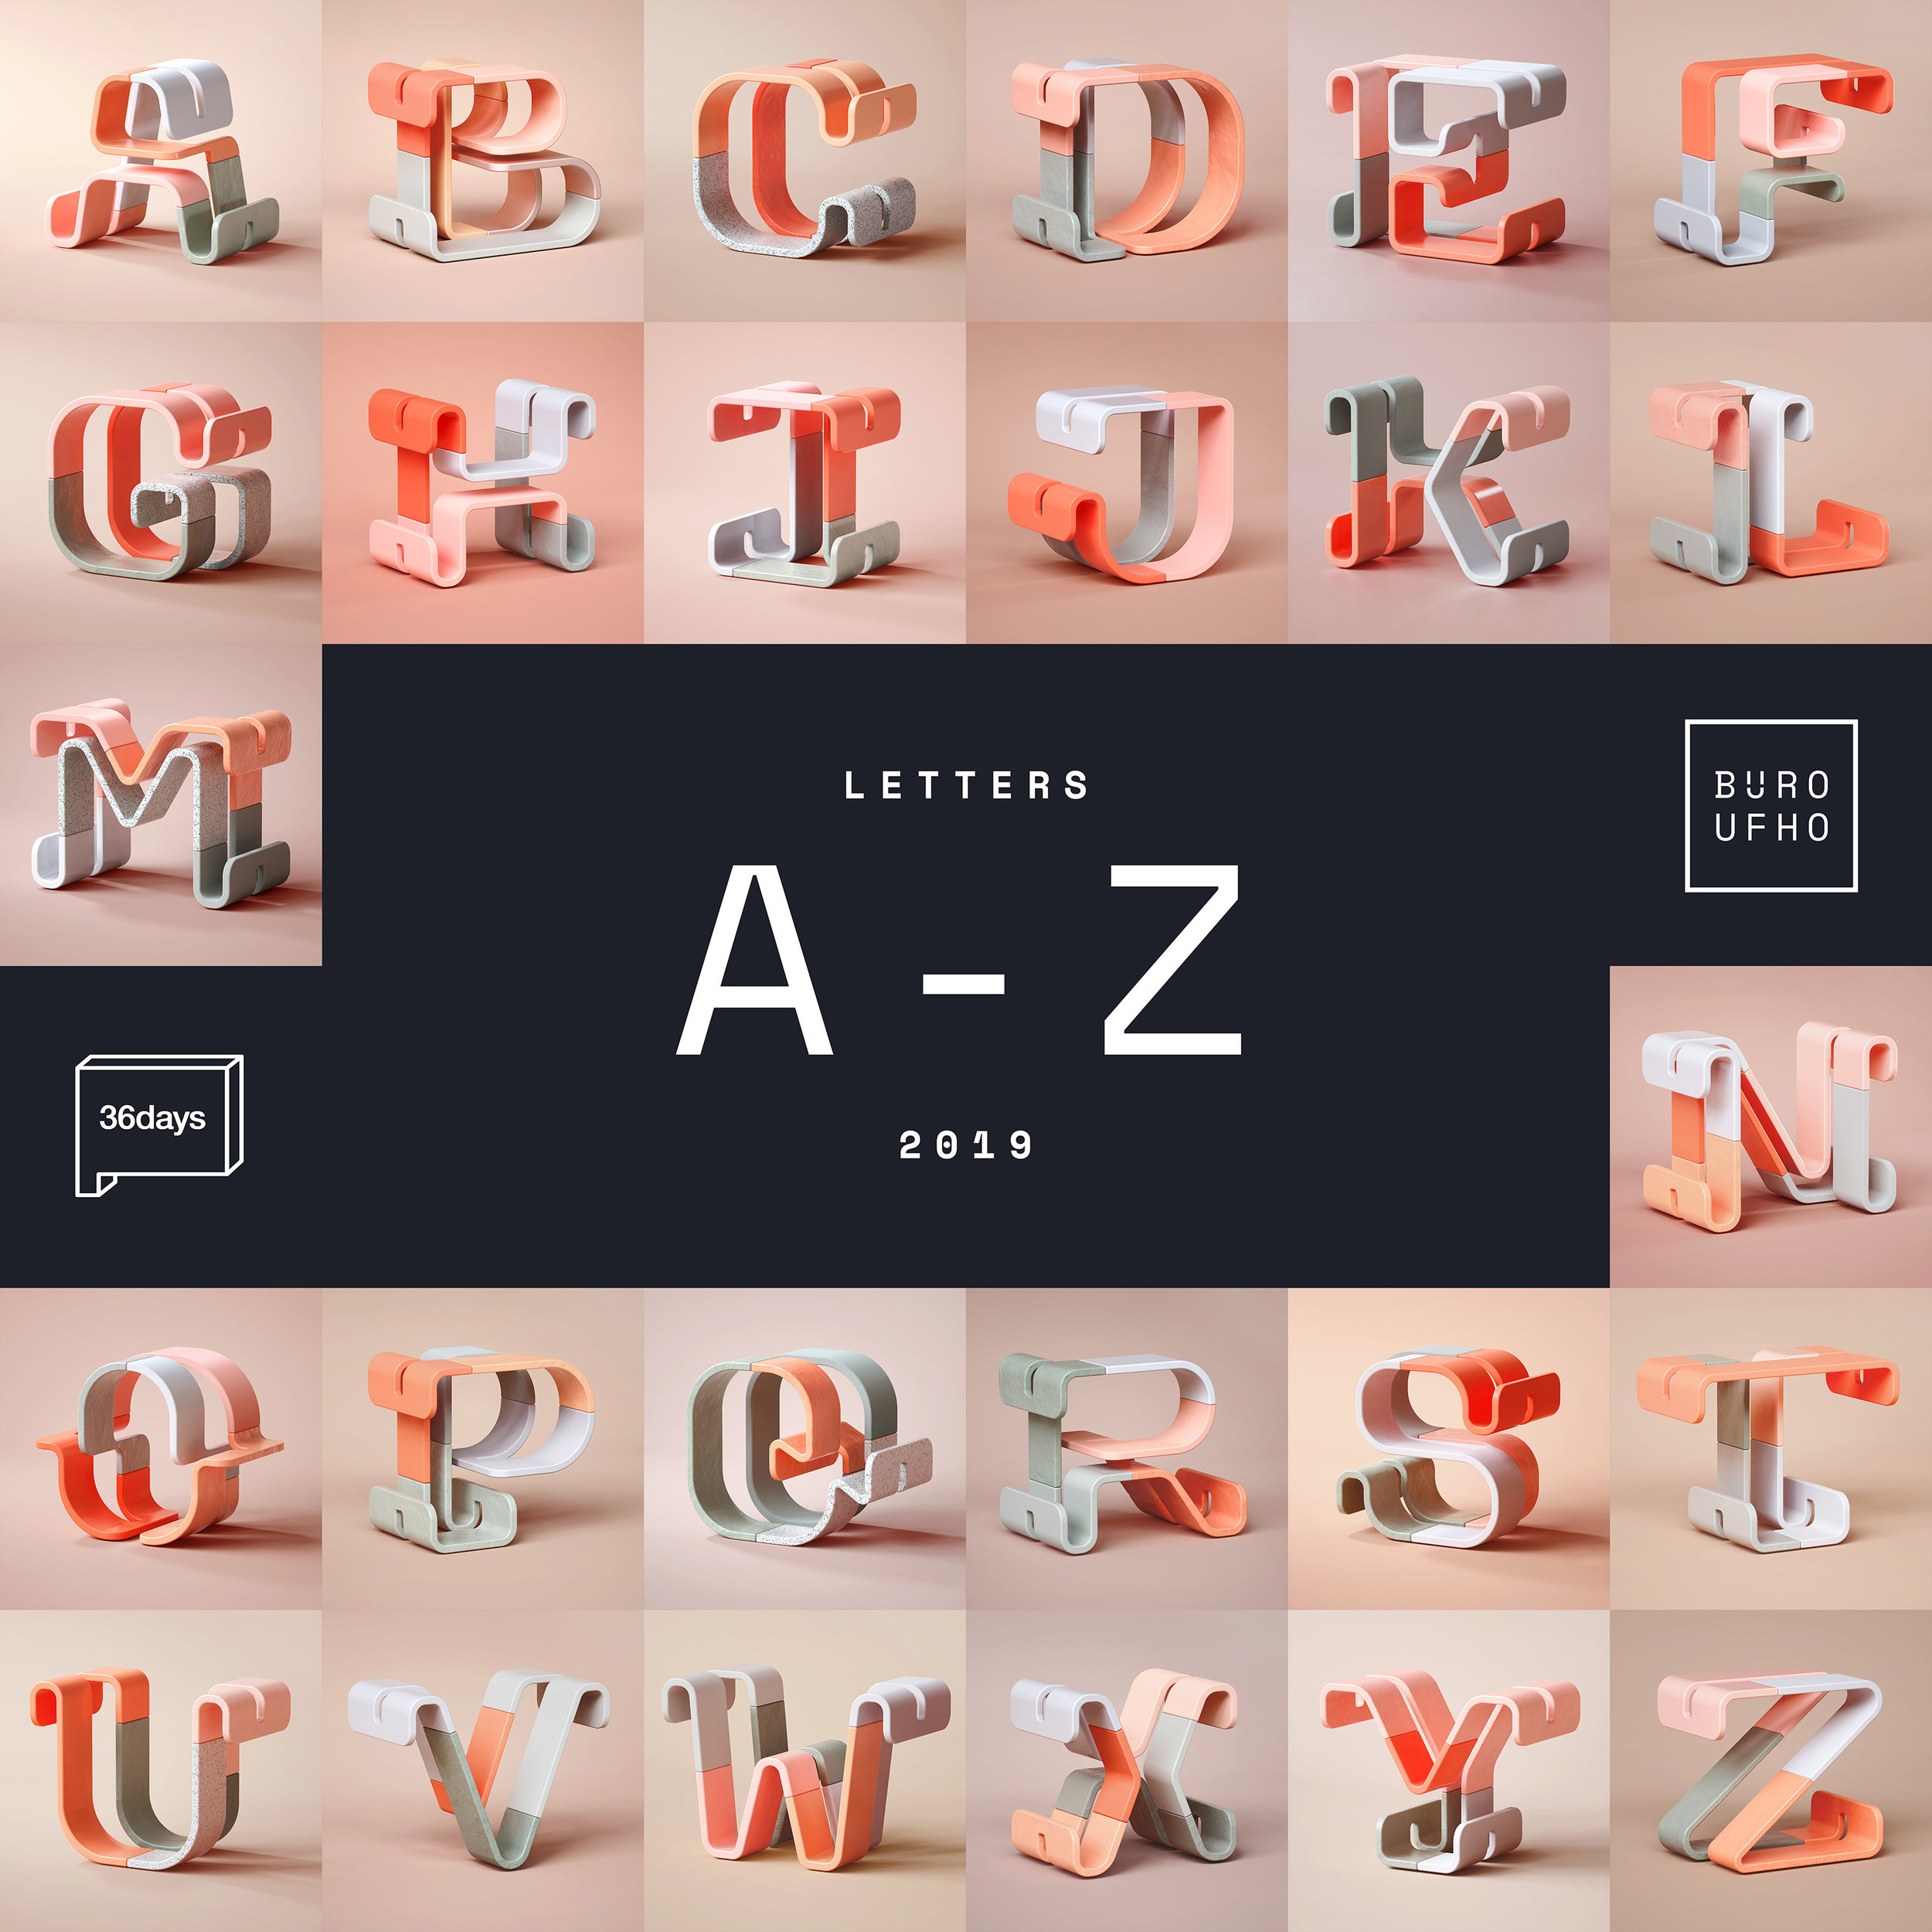 36 Days of Type 2019 - 3D Typeform letter A to Z visuals.